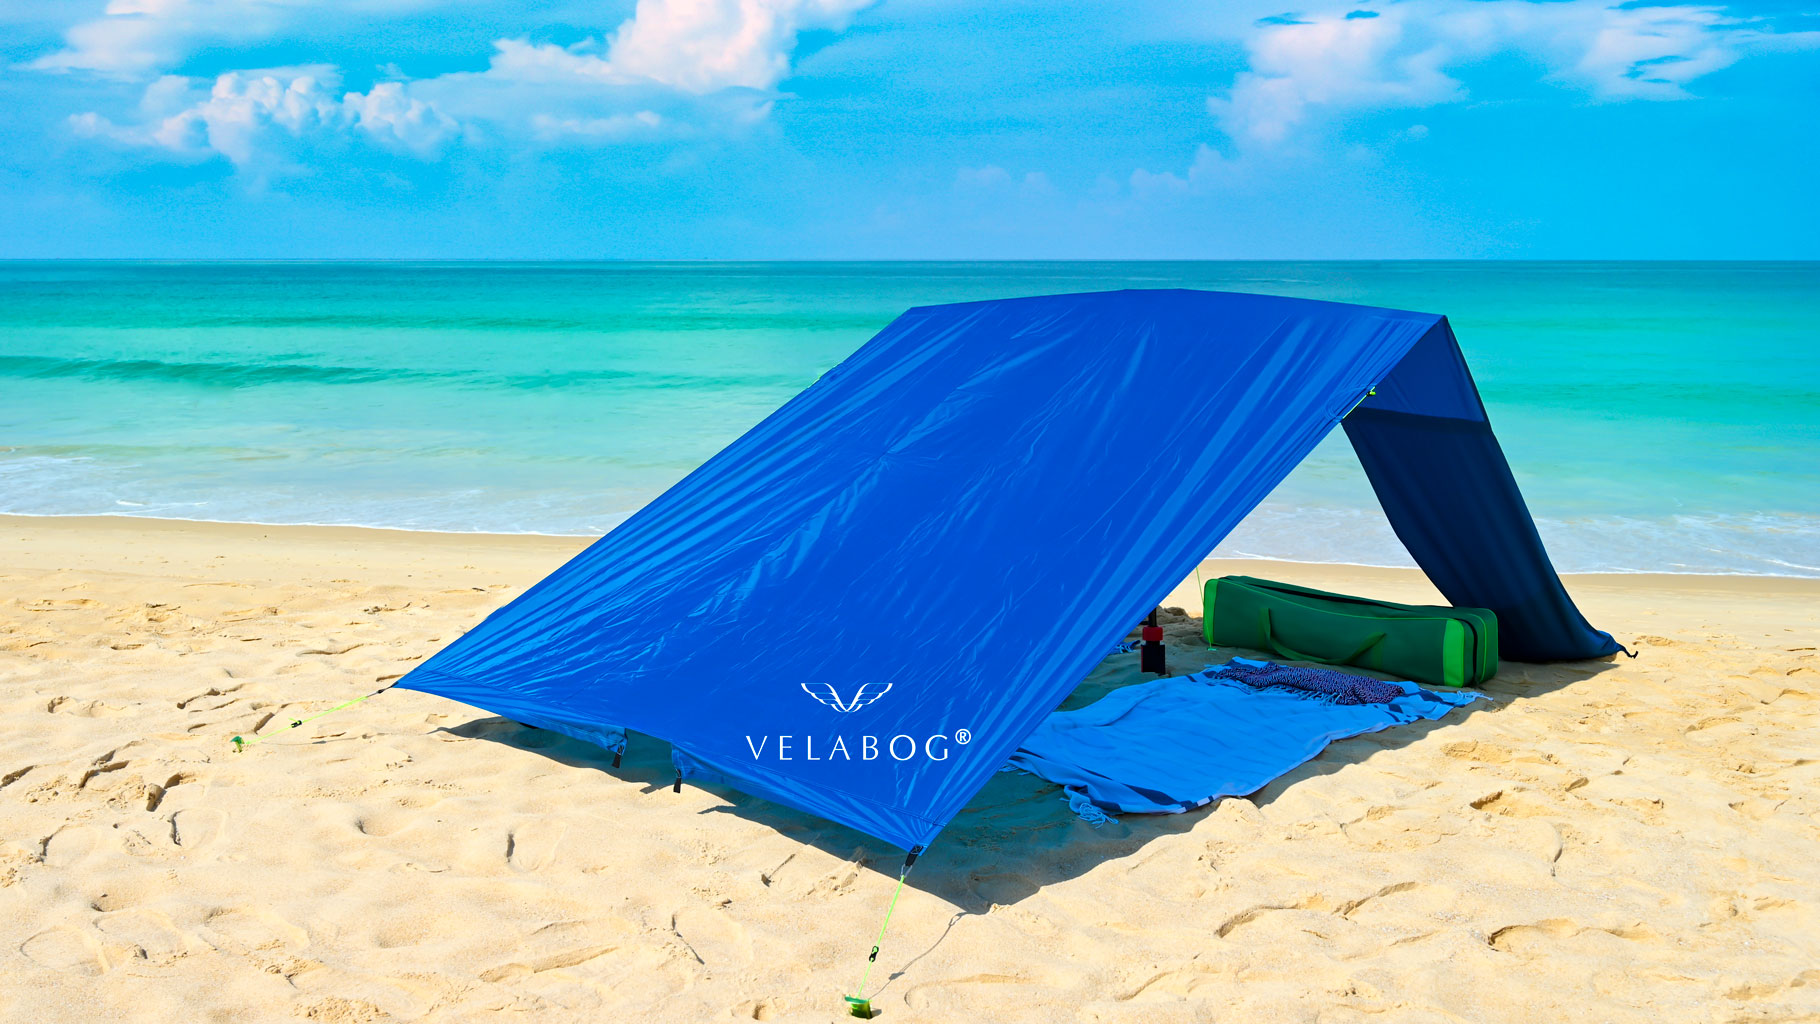 Velabog sun sail «Breeze» blue on the windless beach. Sun sail, beach umbrella and beach tent in one. Can also be used without wind. No heat build-up. Very large and stable. View from behind.